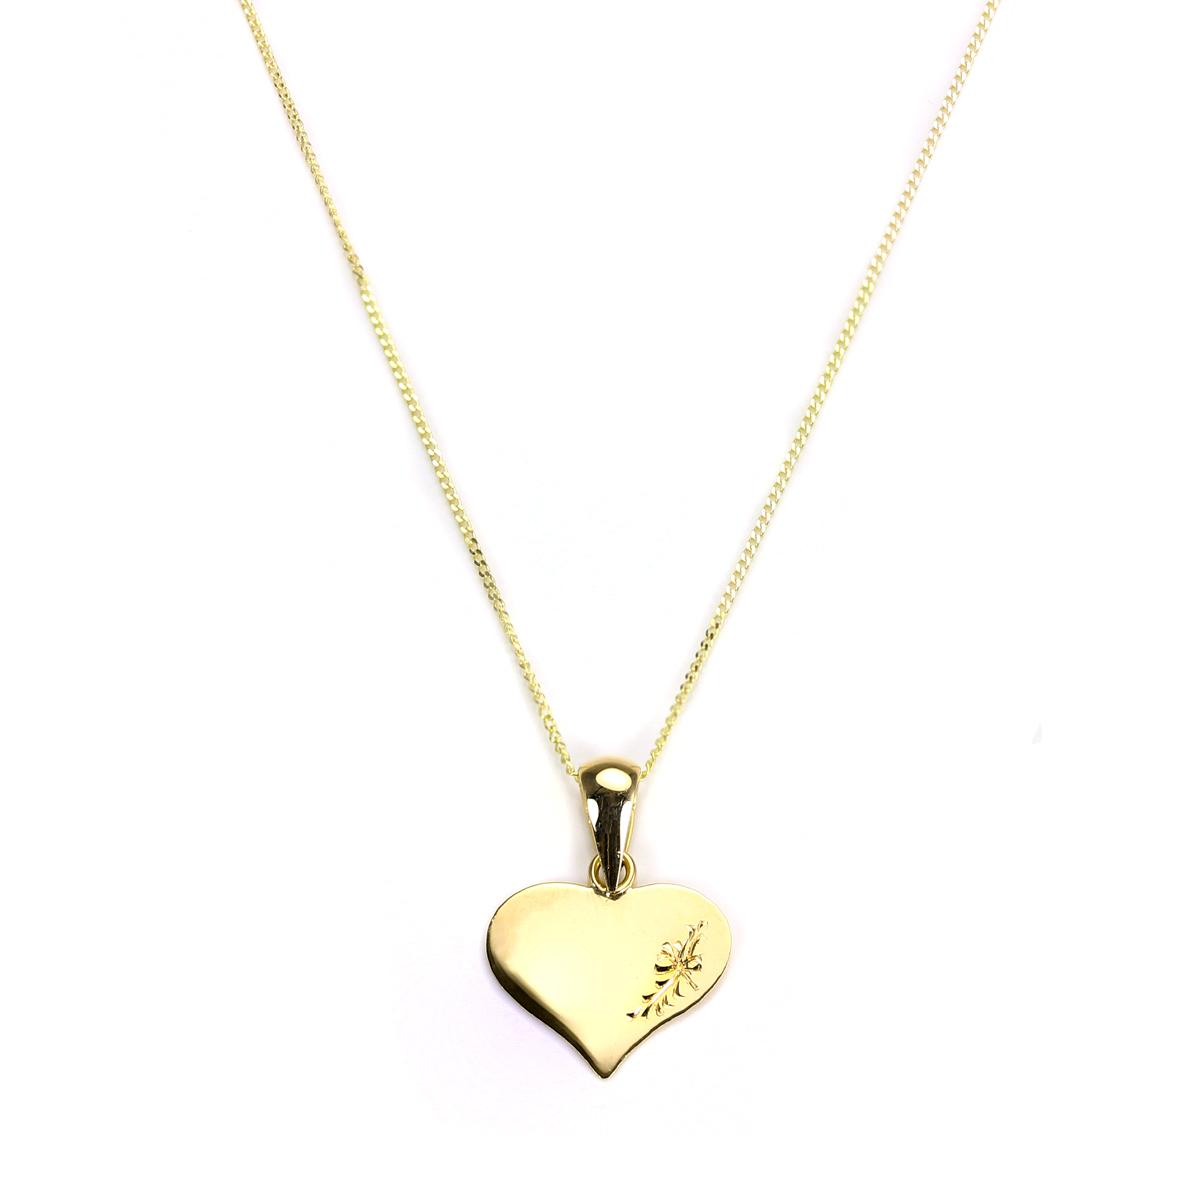 9ct yellow gold engraved heart shaped pendant ebay item specifics aloadofball Gallery